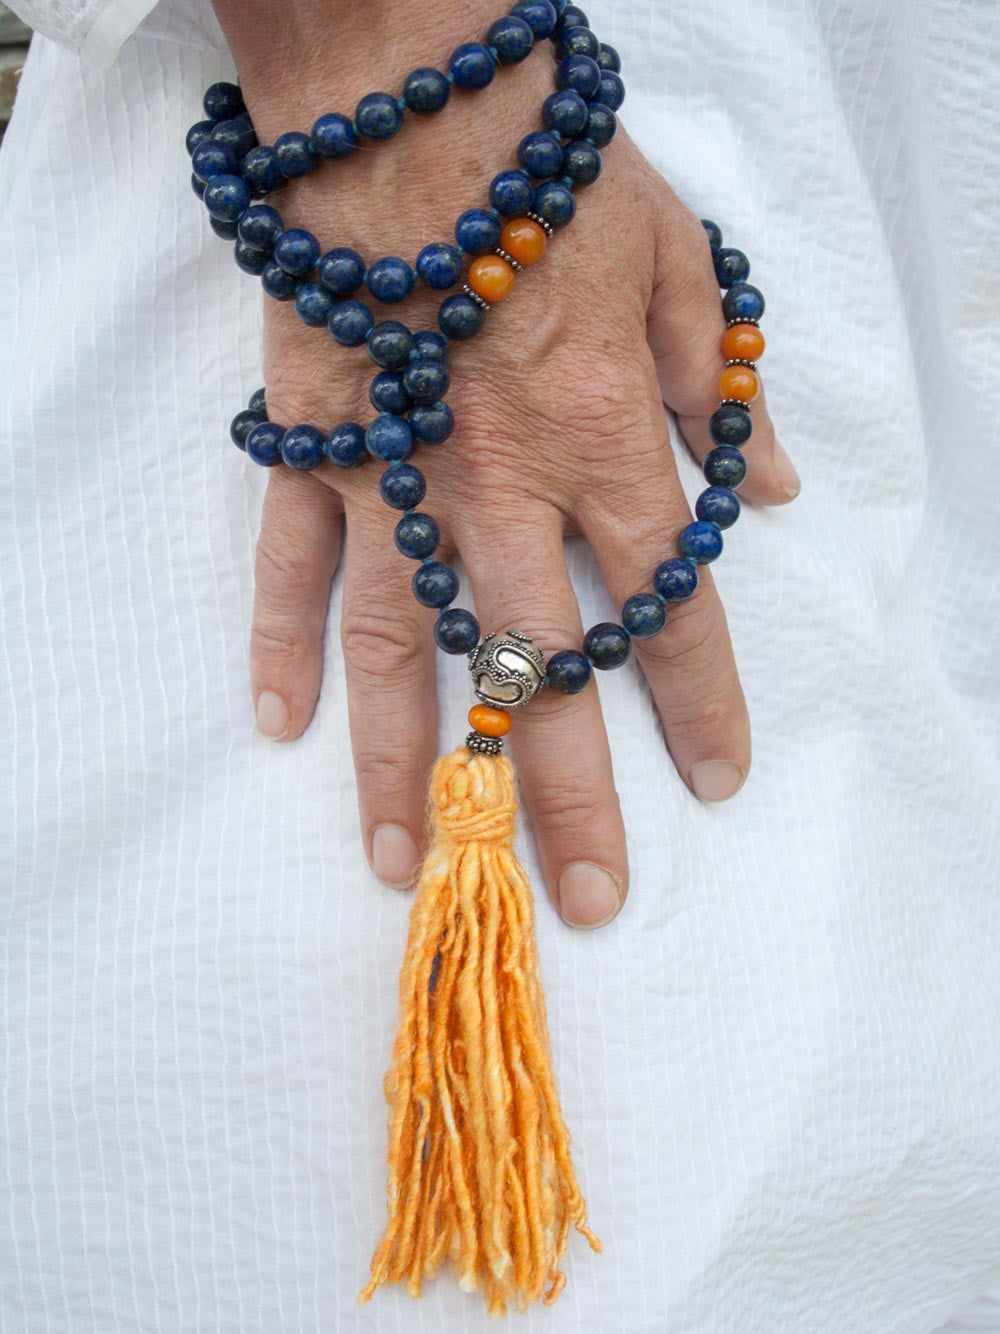 Resounding Om Mala is hand-knotted in 10mm lapis lazuli, with amber accents, handmade 925 silver Om Guru, and vibrant sari silk tassel: hand view.